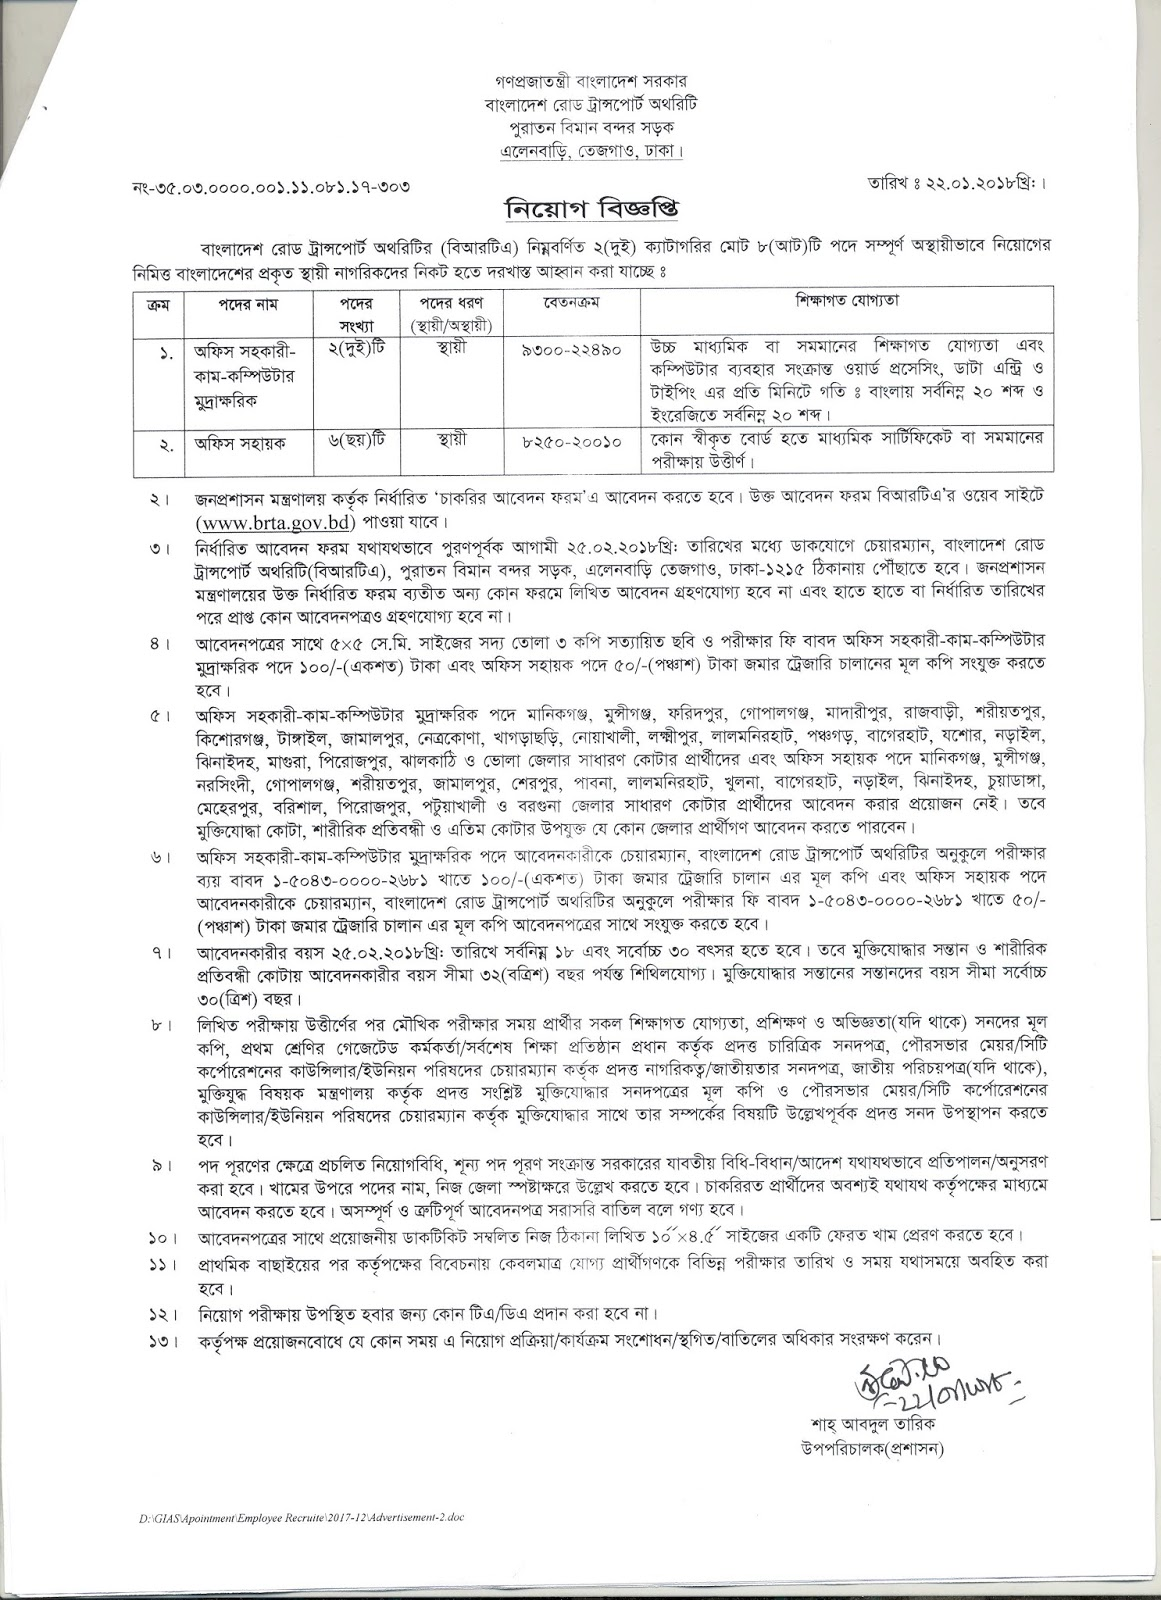 BRTA - Bangladesh Road Transport Authority Job Circular 2018